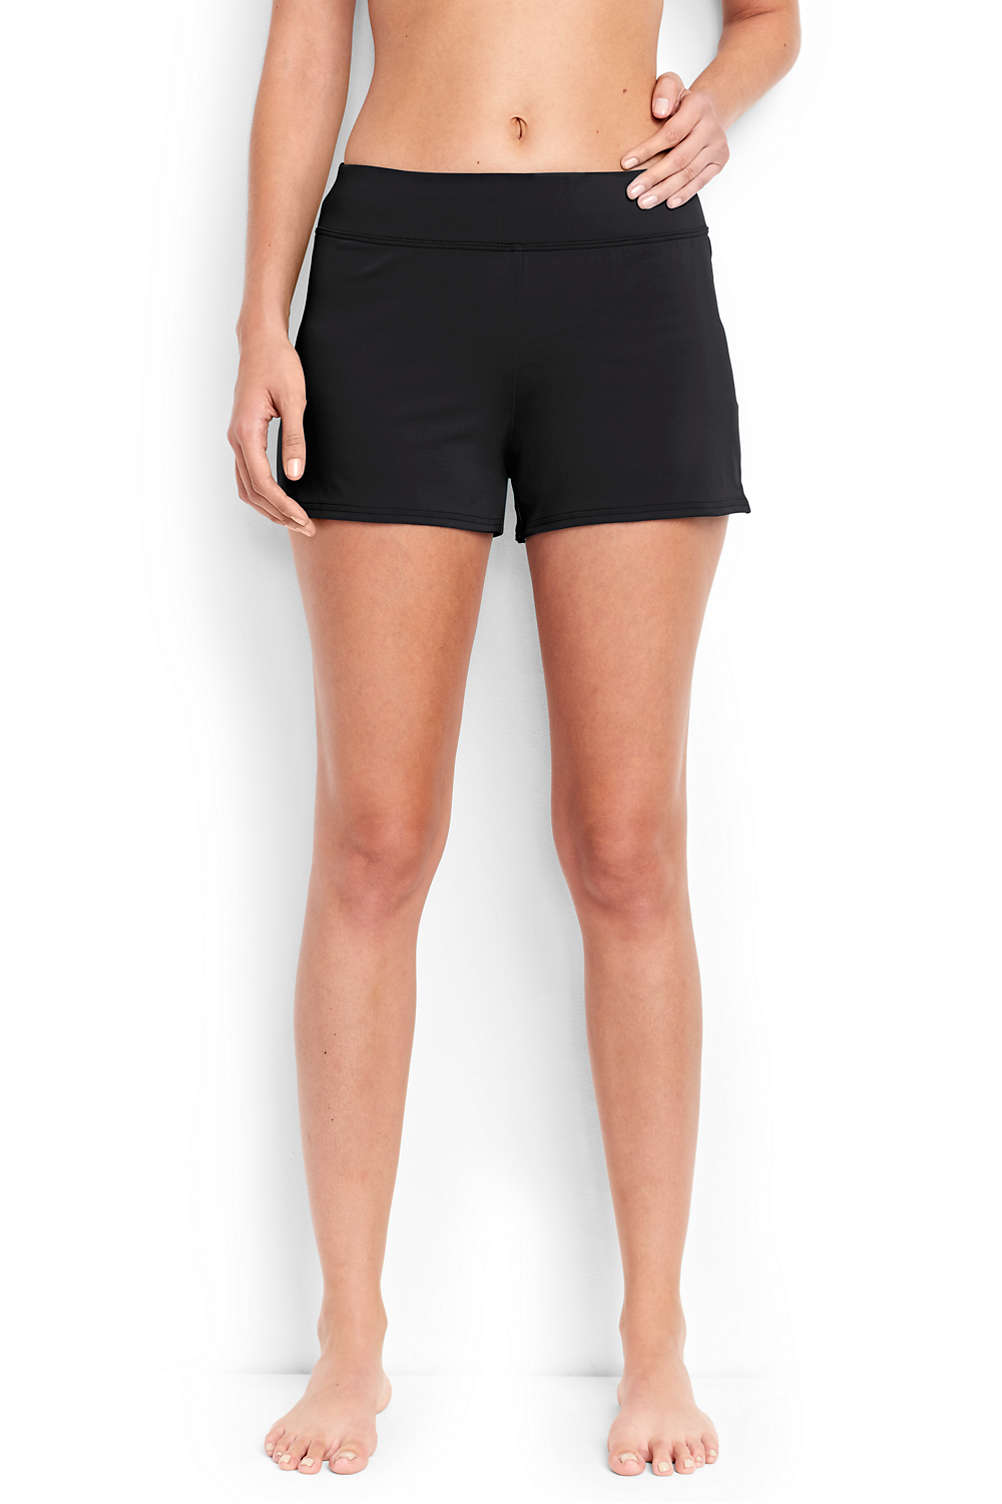 f7ae49dd8600 Women's Swim Shorts with Tummy Control from Lands' End